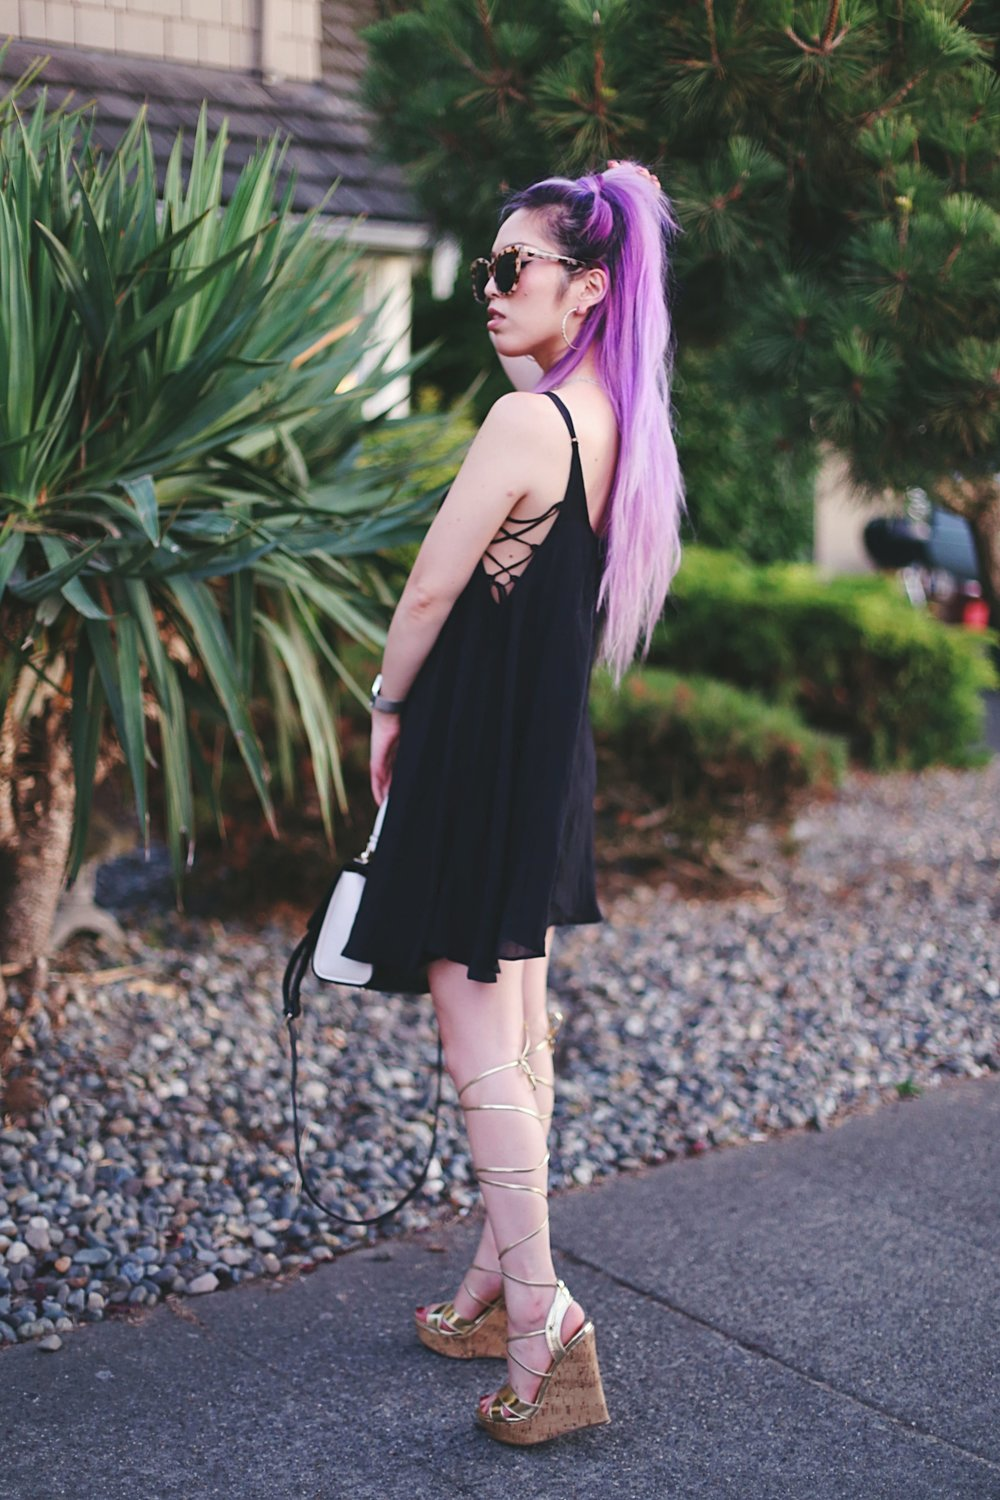 Urban Outfitters Kimchi Blue Lace-Up Side Mini Dress & Carmen Oversized Cat-Eye Sunglasses_ShoeDazzle Gold lace up wedge sandals_ZARA CONTRAST MINI CITY BAG_Christian Paul 43MM HAYMAN MARBLE MESH watch_Aikas Love Closet_Seattle Fashion Blogger from Japan_Lavender Hair_Purple hair